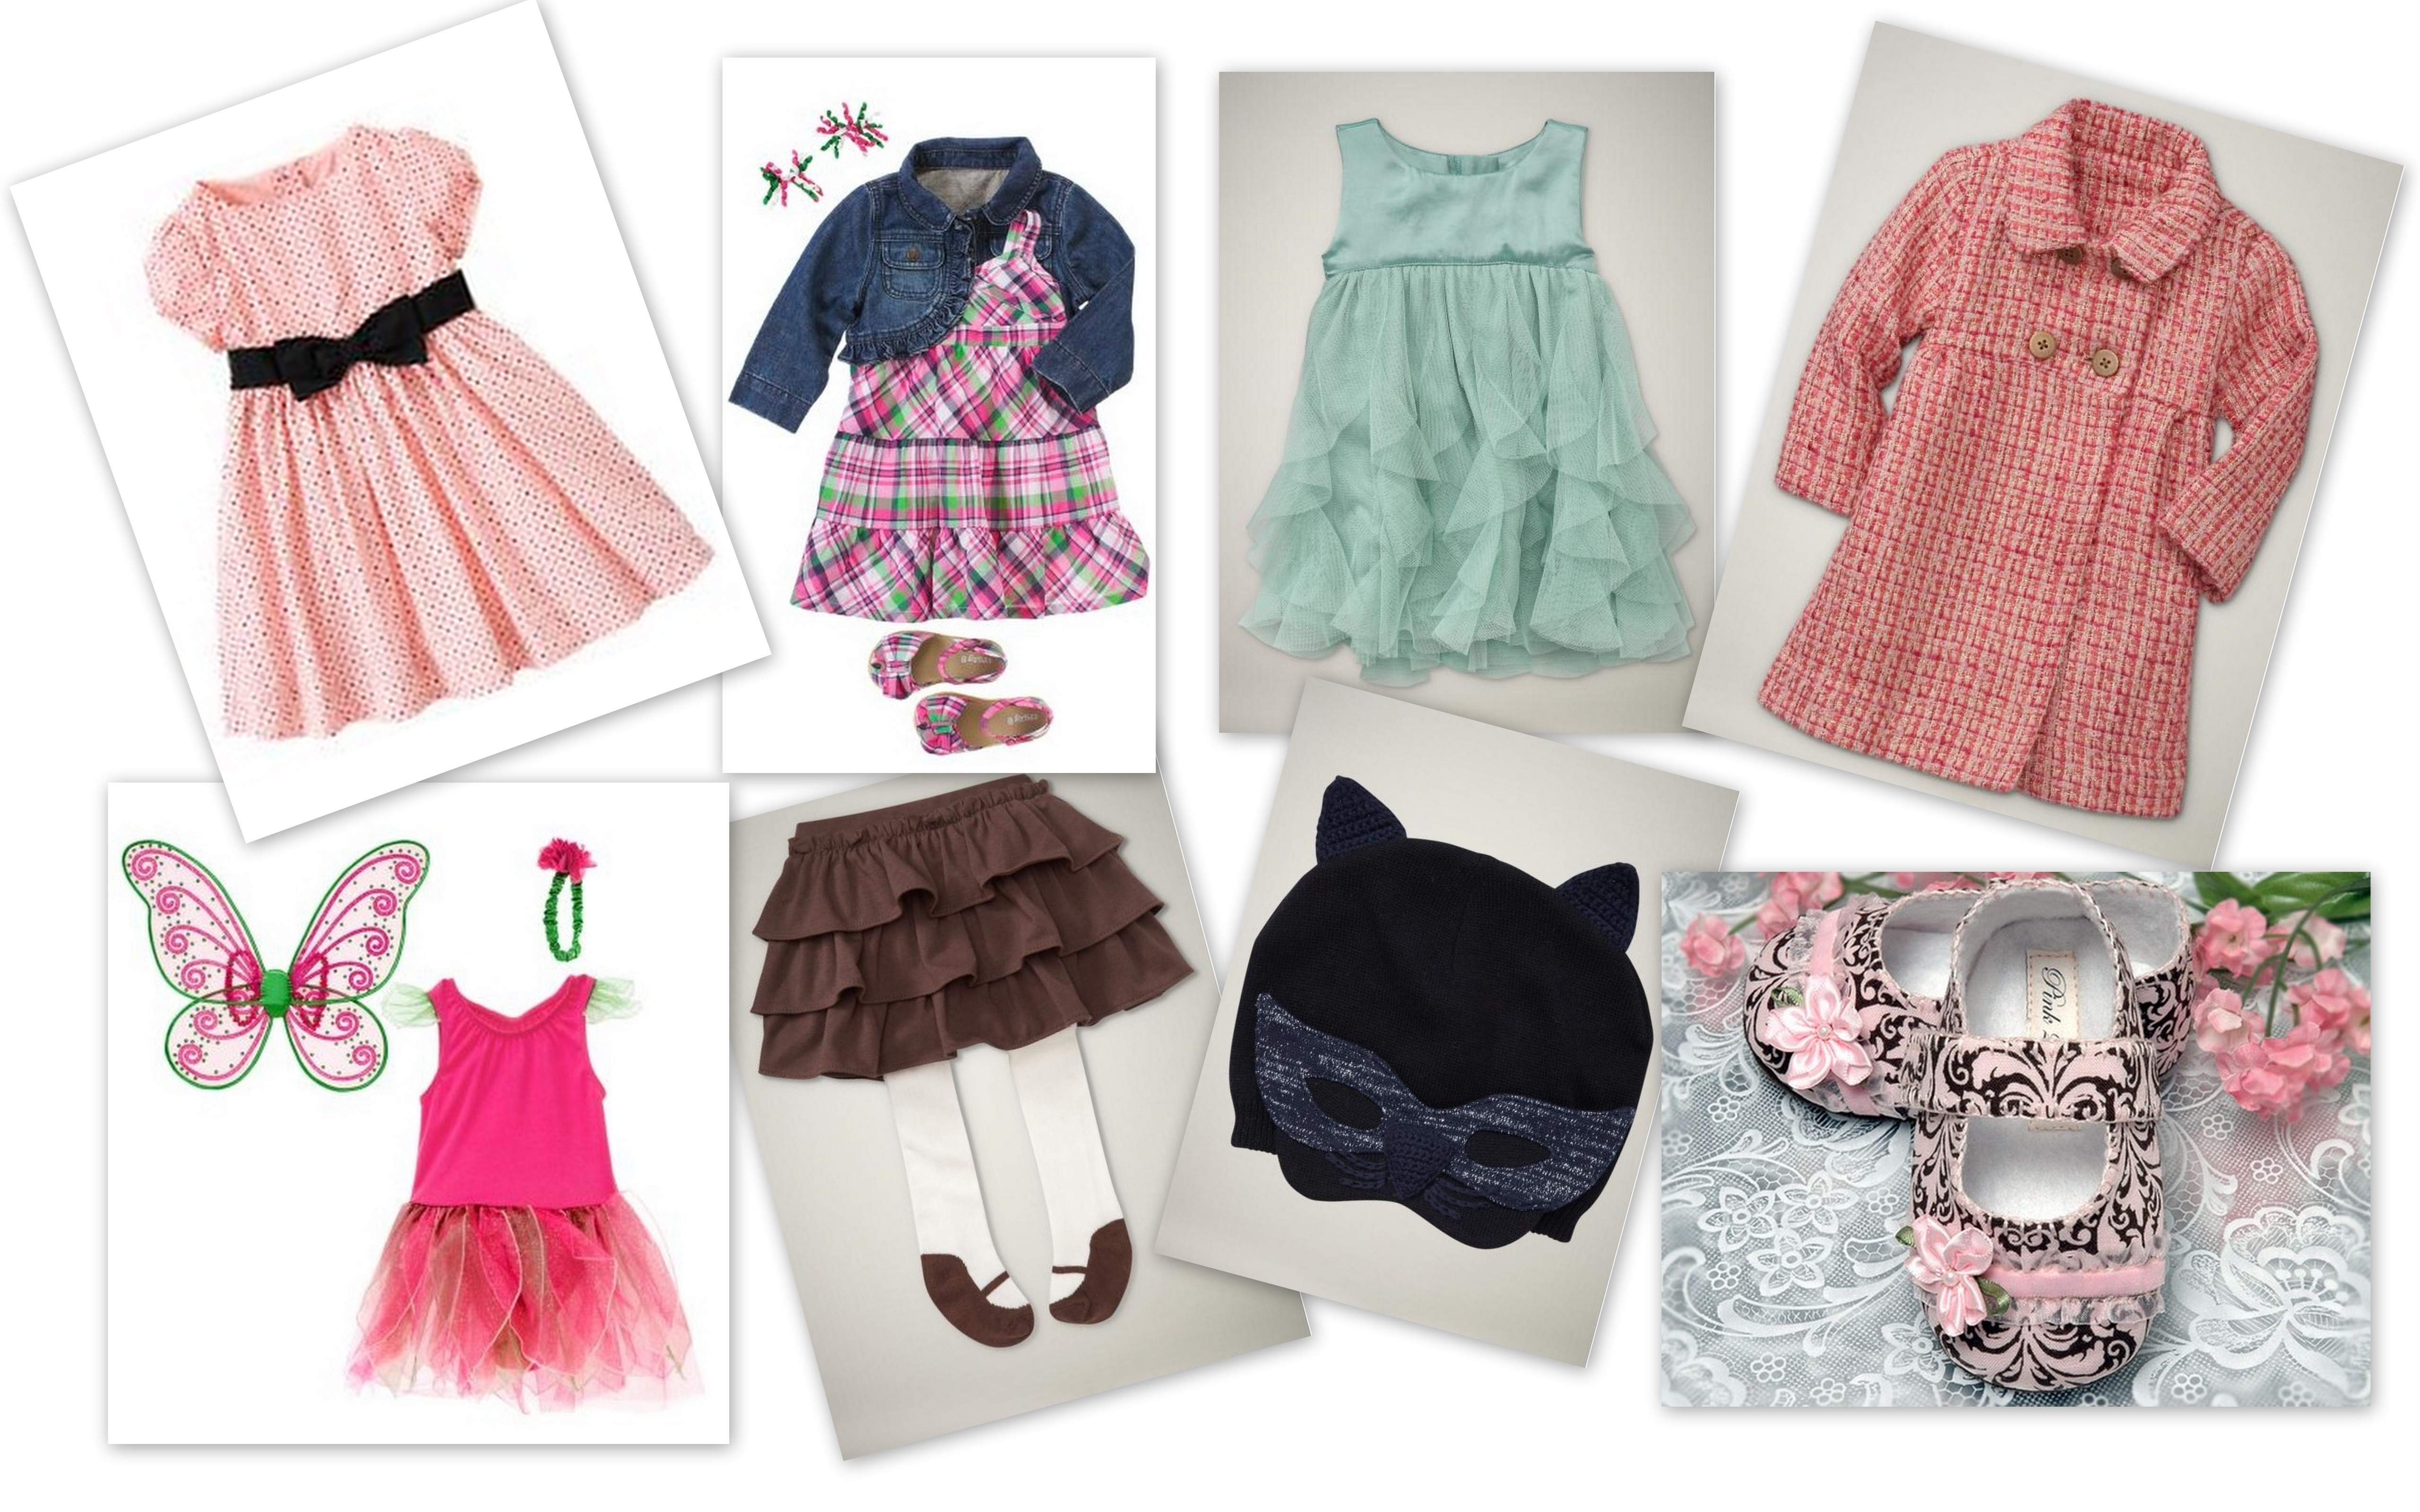 cute baby girl clothes images crazy gallery Girl Gloss